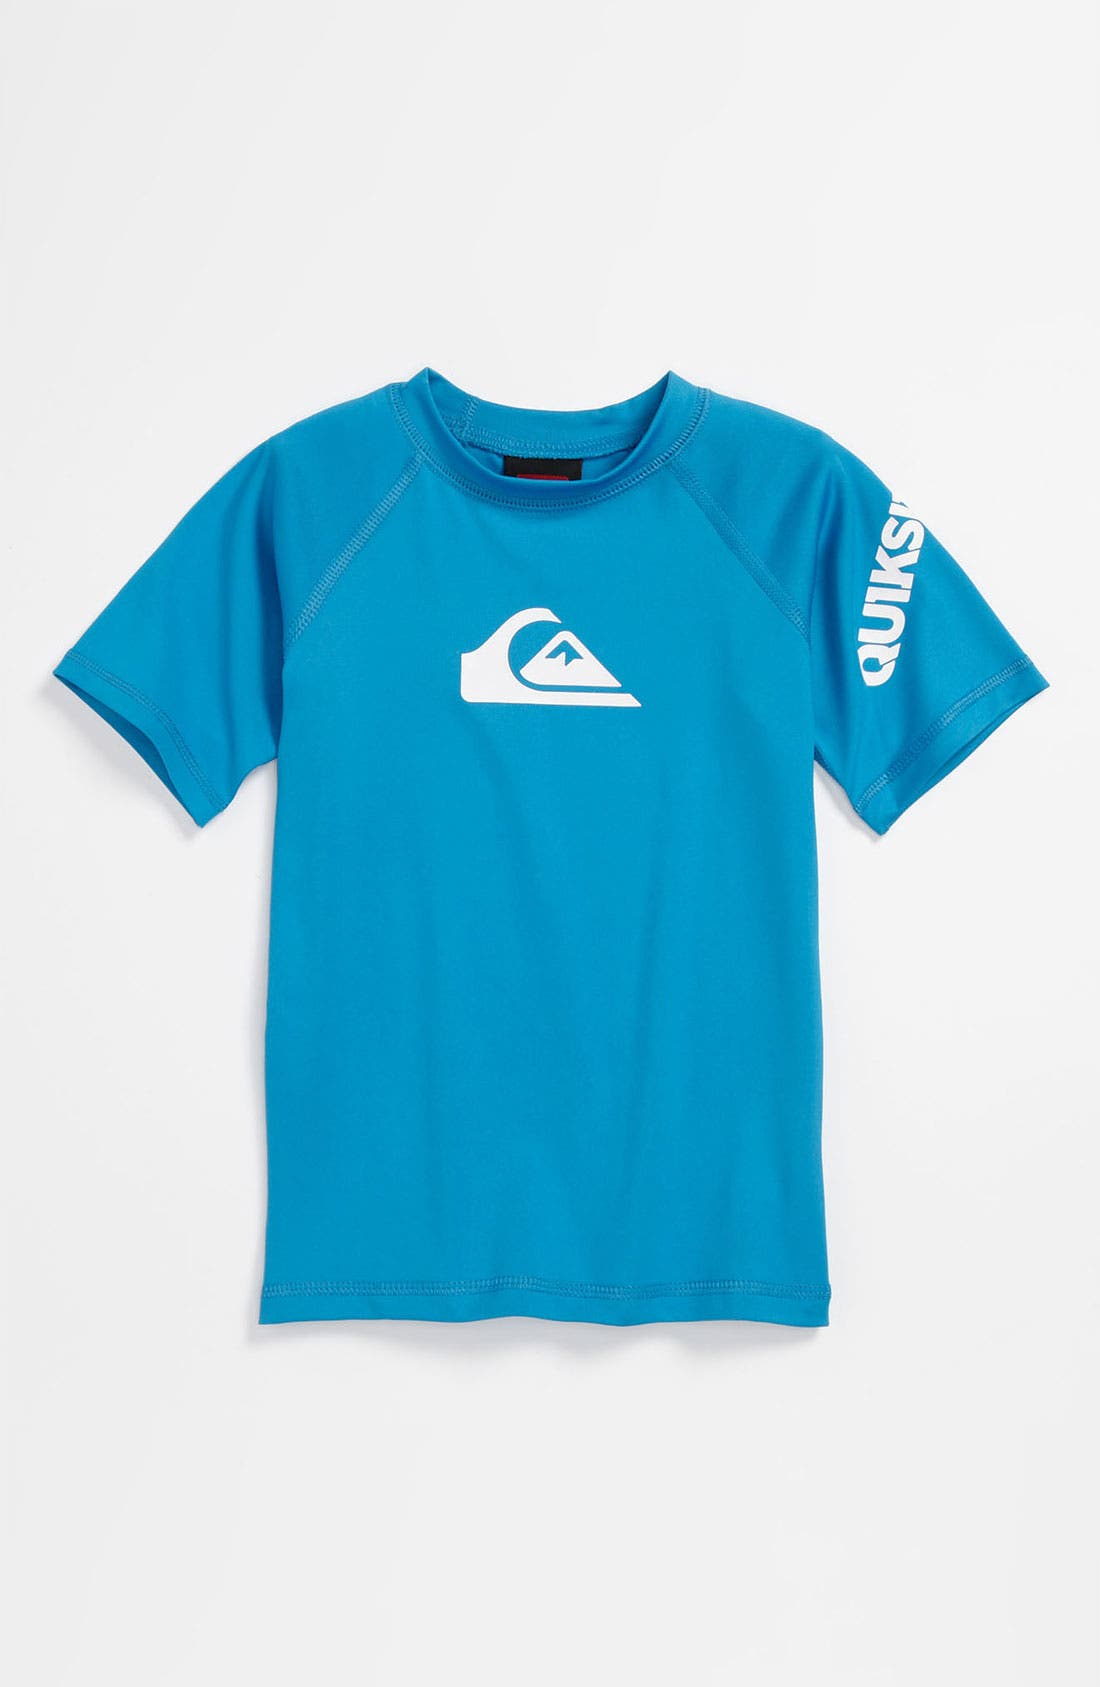 Main Image - Quiksilver 'All Time' Rashguard (Toddler)